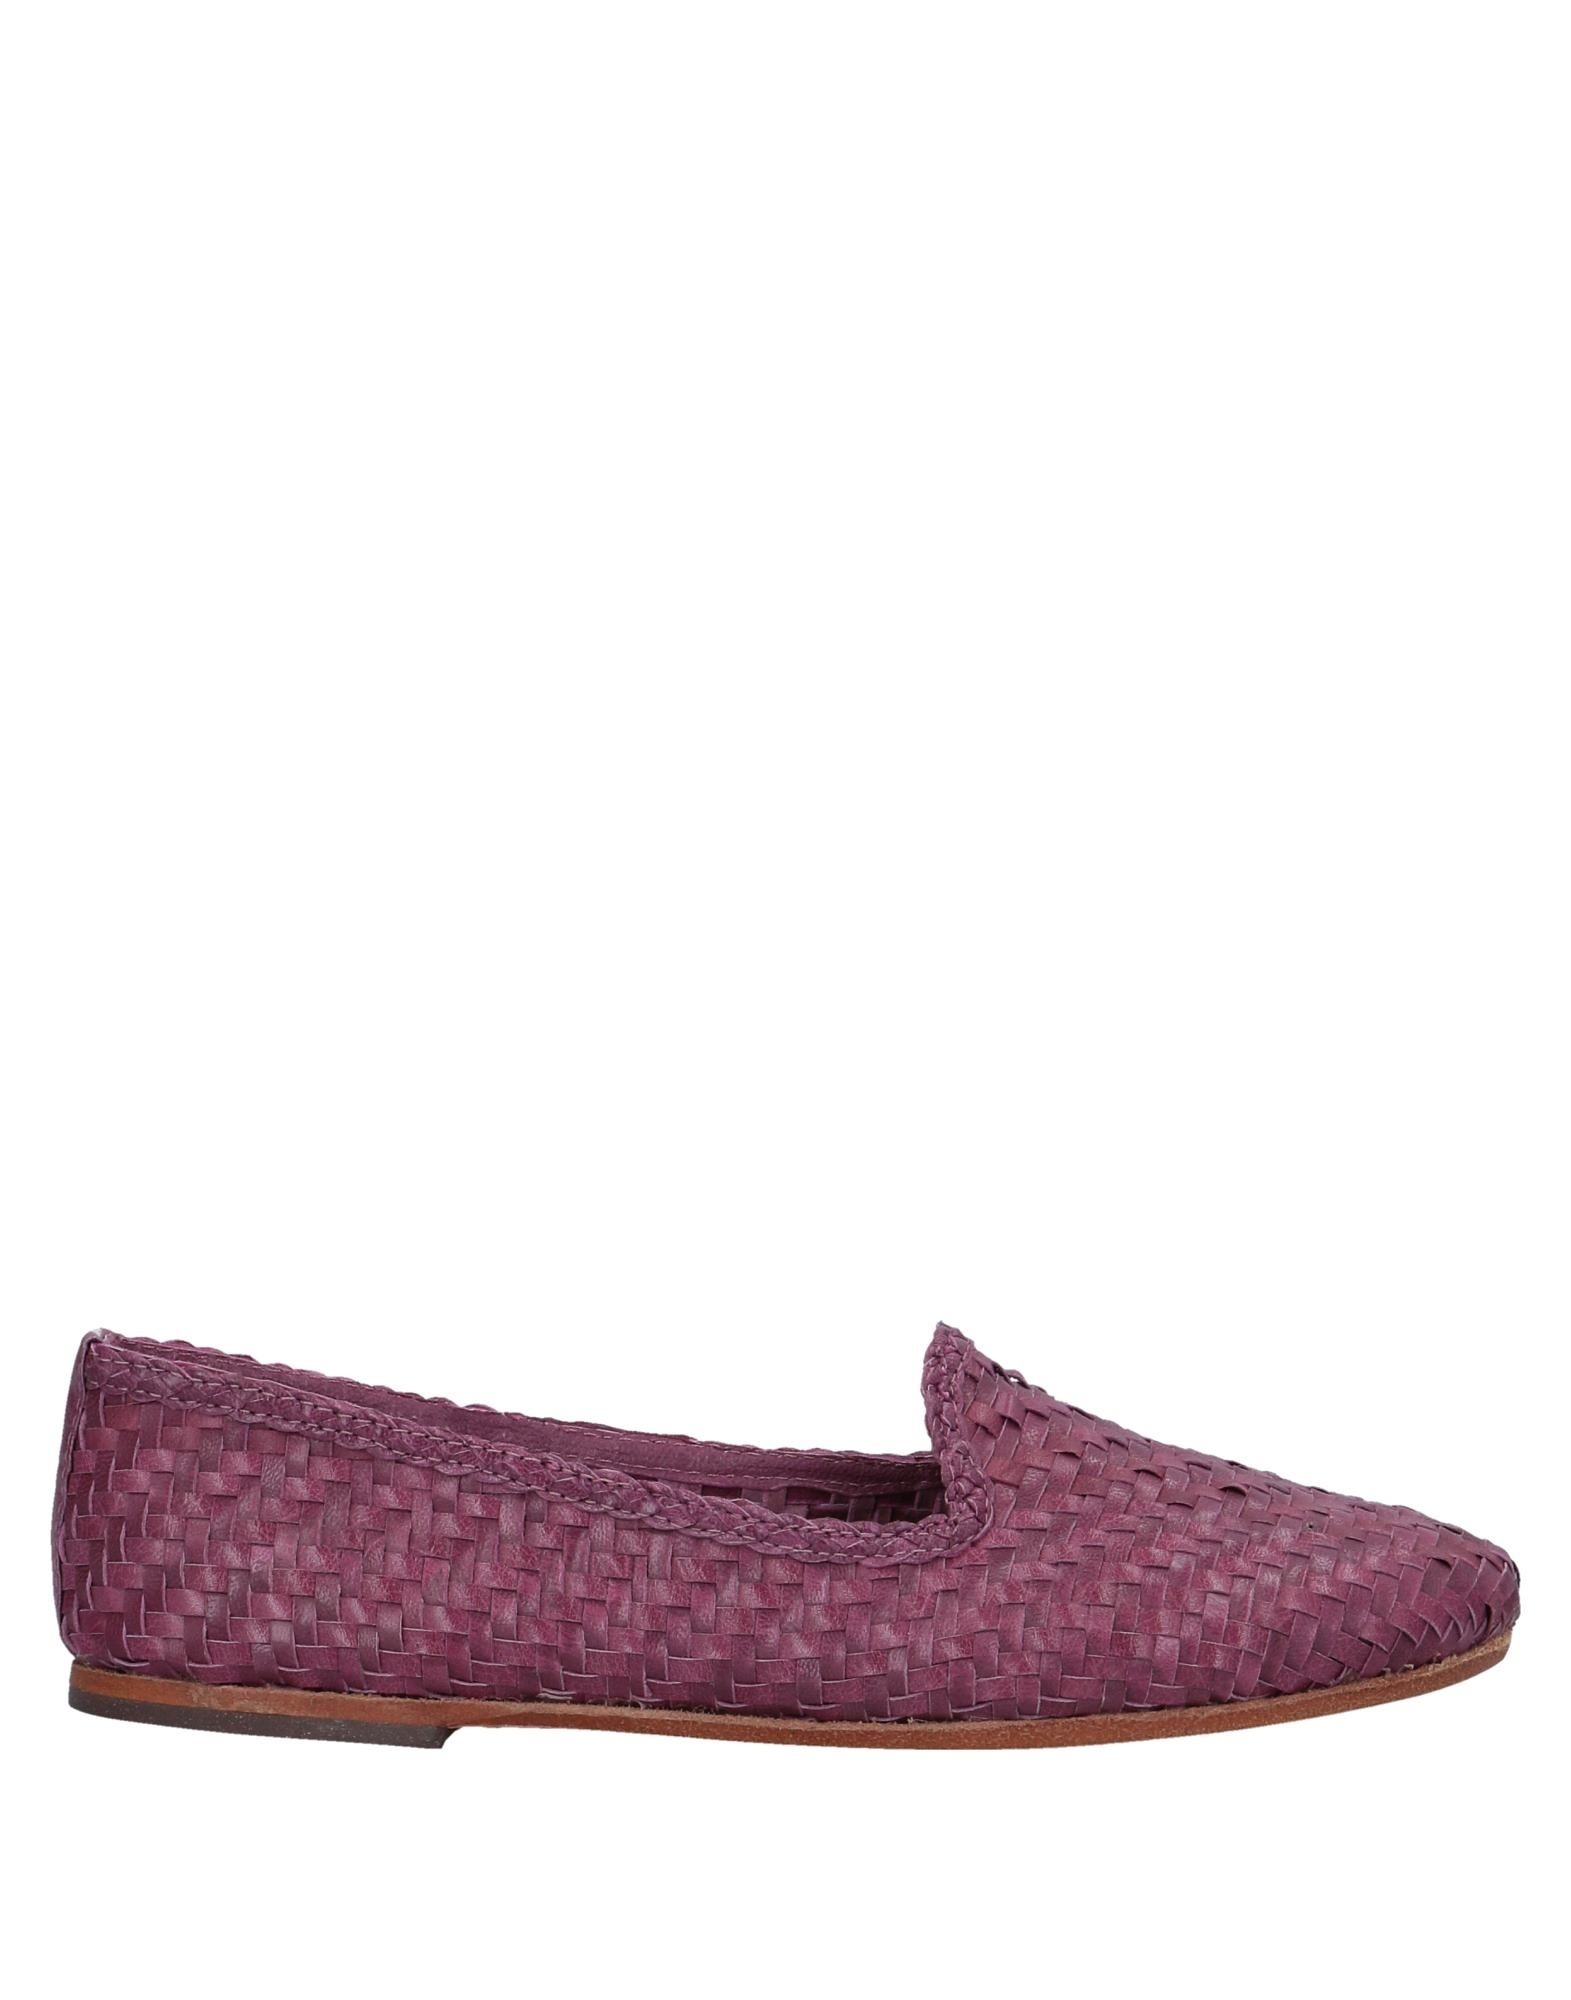 Daniela Mori Milano Mori Loafers - Women Daniela Mori Milano Milano Loafers online on  United Kingdom - 11527252UK d46bed